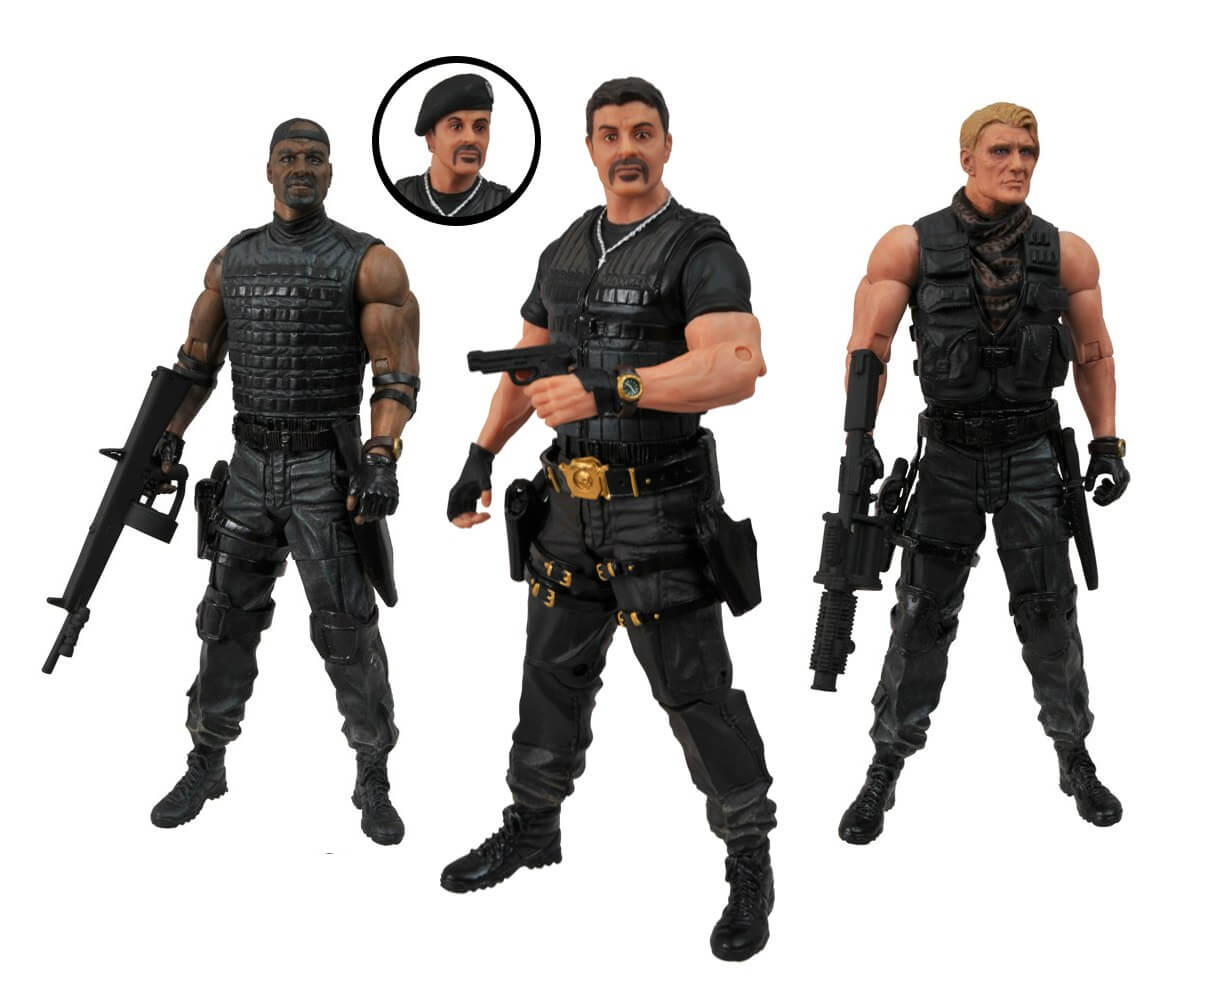 ... Action Figures Are...